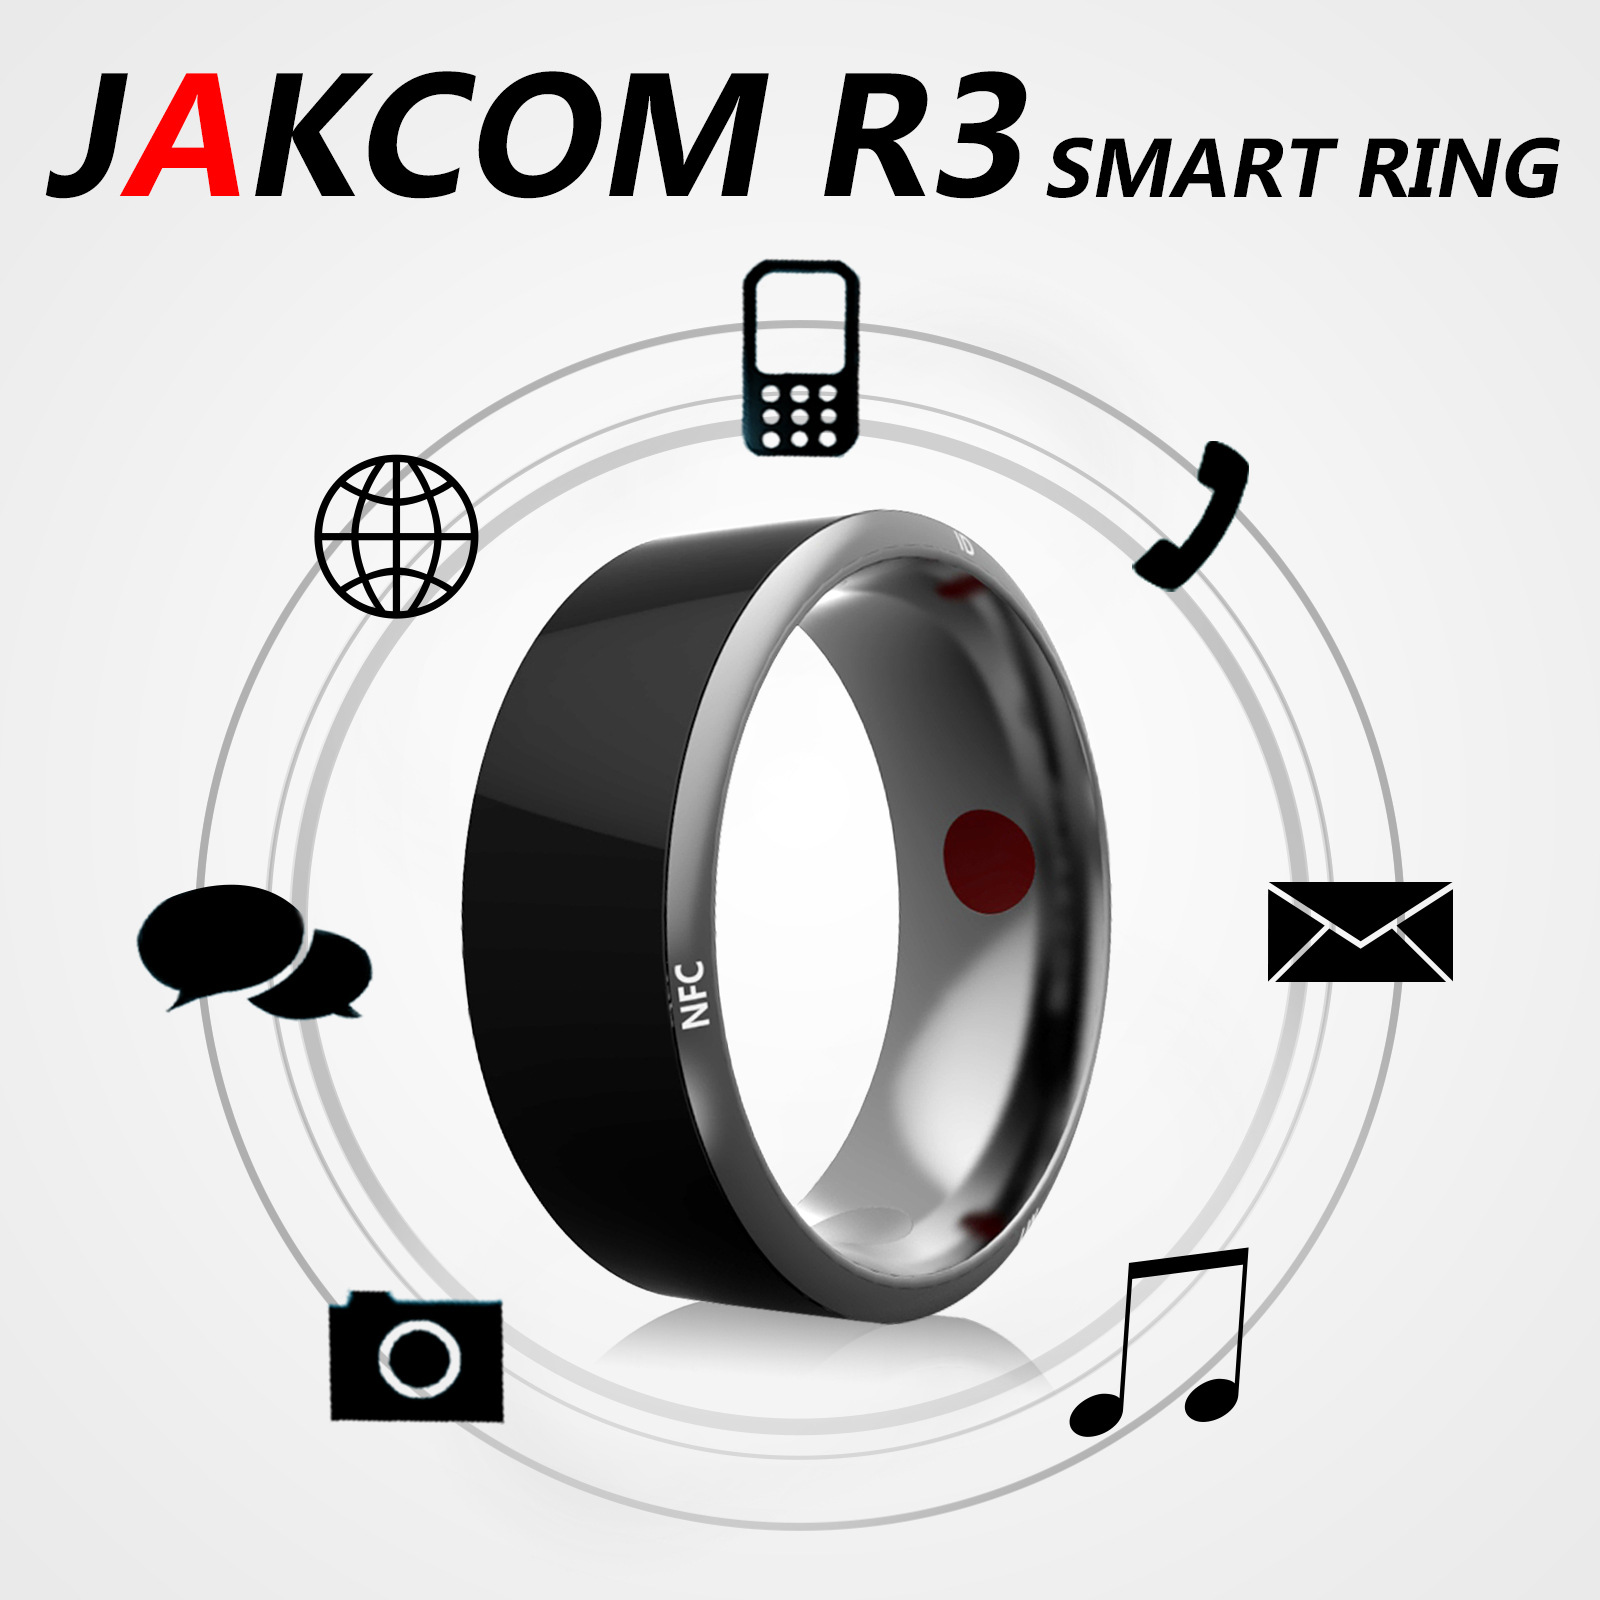 Werable devices Jakcom R3 Smart Ring electronic CNC Metal Mini Magic RFID NFC Ring IC/ID Copy Clone Card лонгслив dzeta